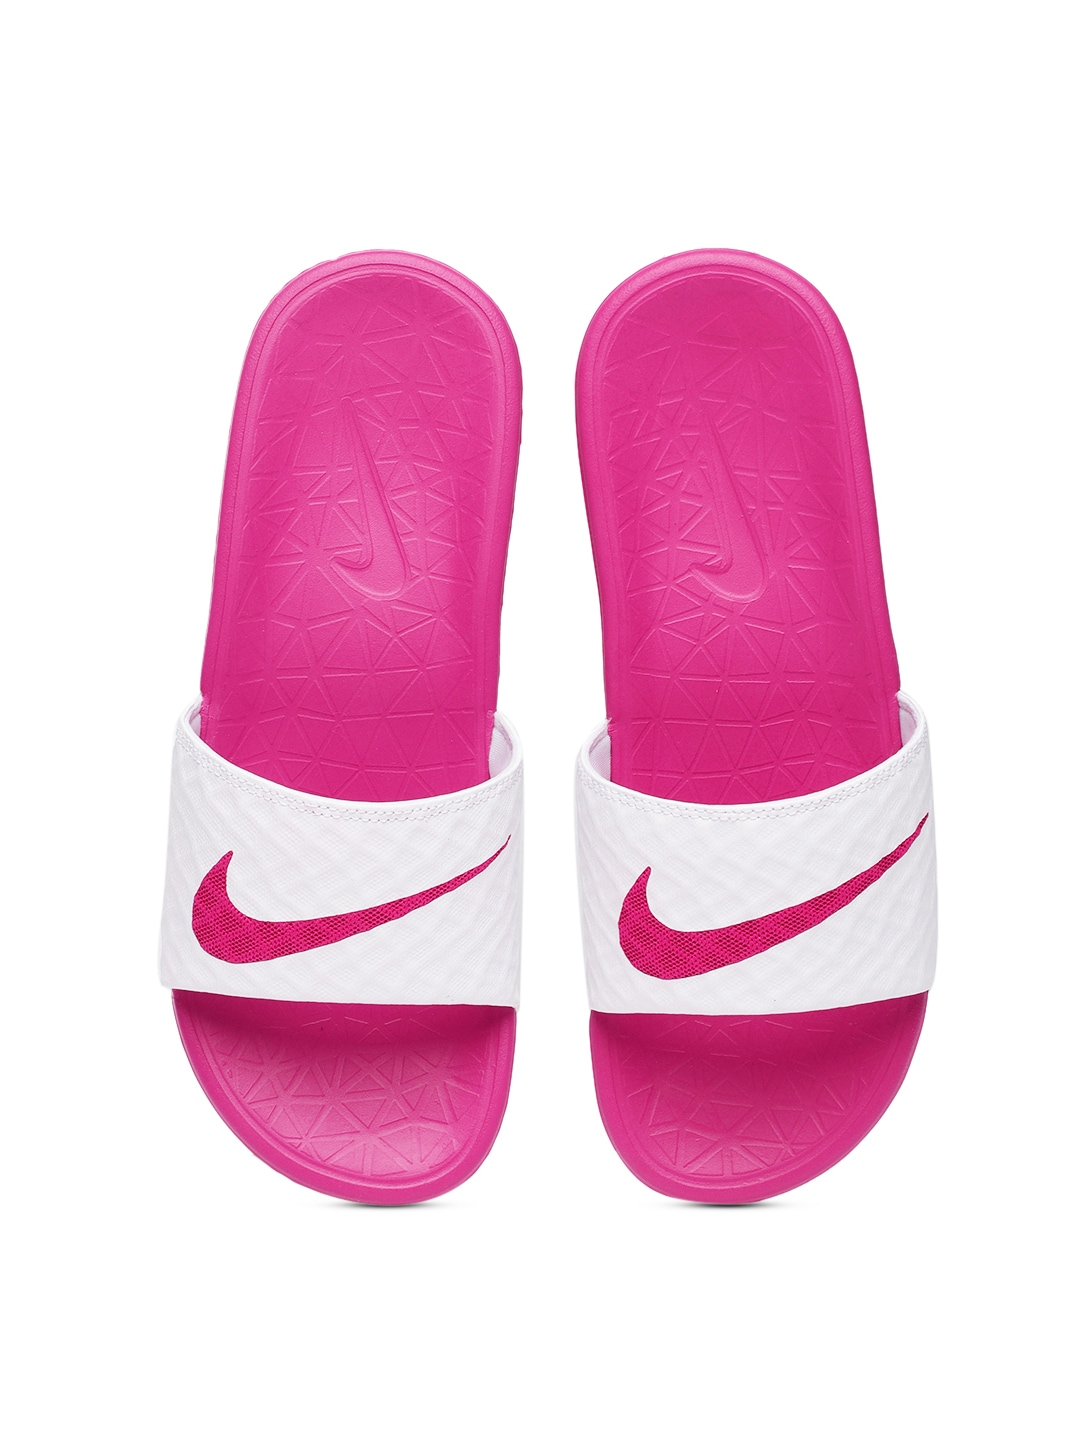 78f3c9021 Nike Flip-Flops - Buy Nike Flip-Flops for Men Women Online